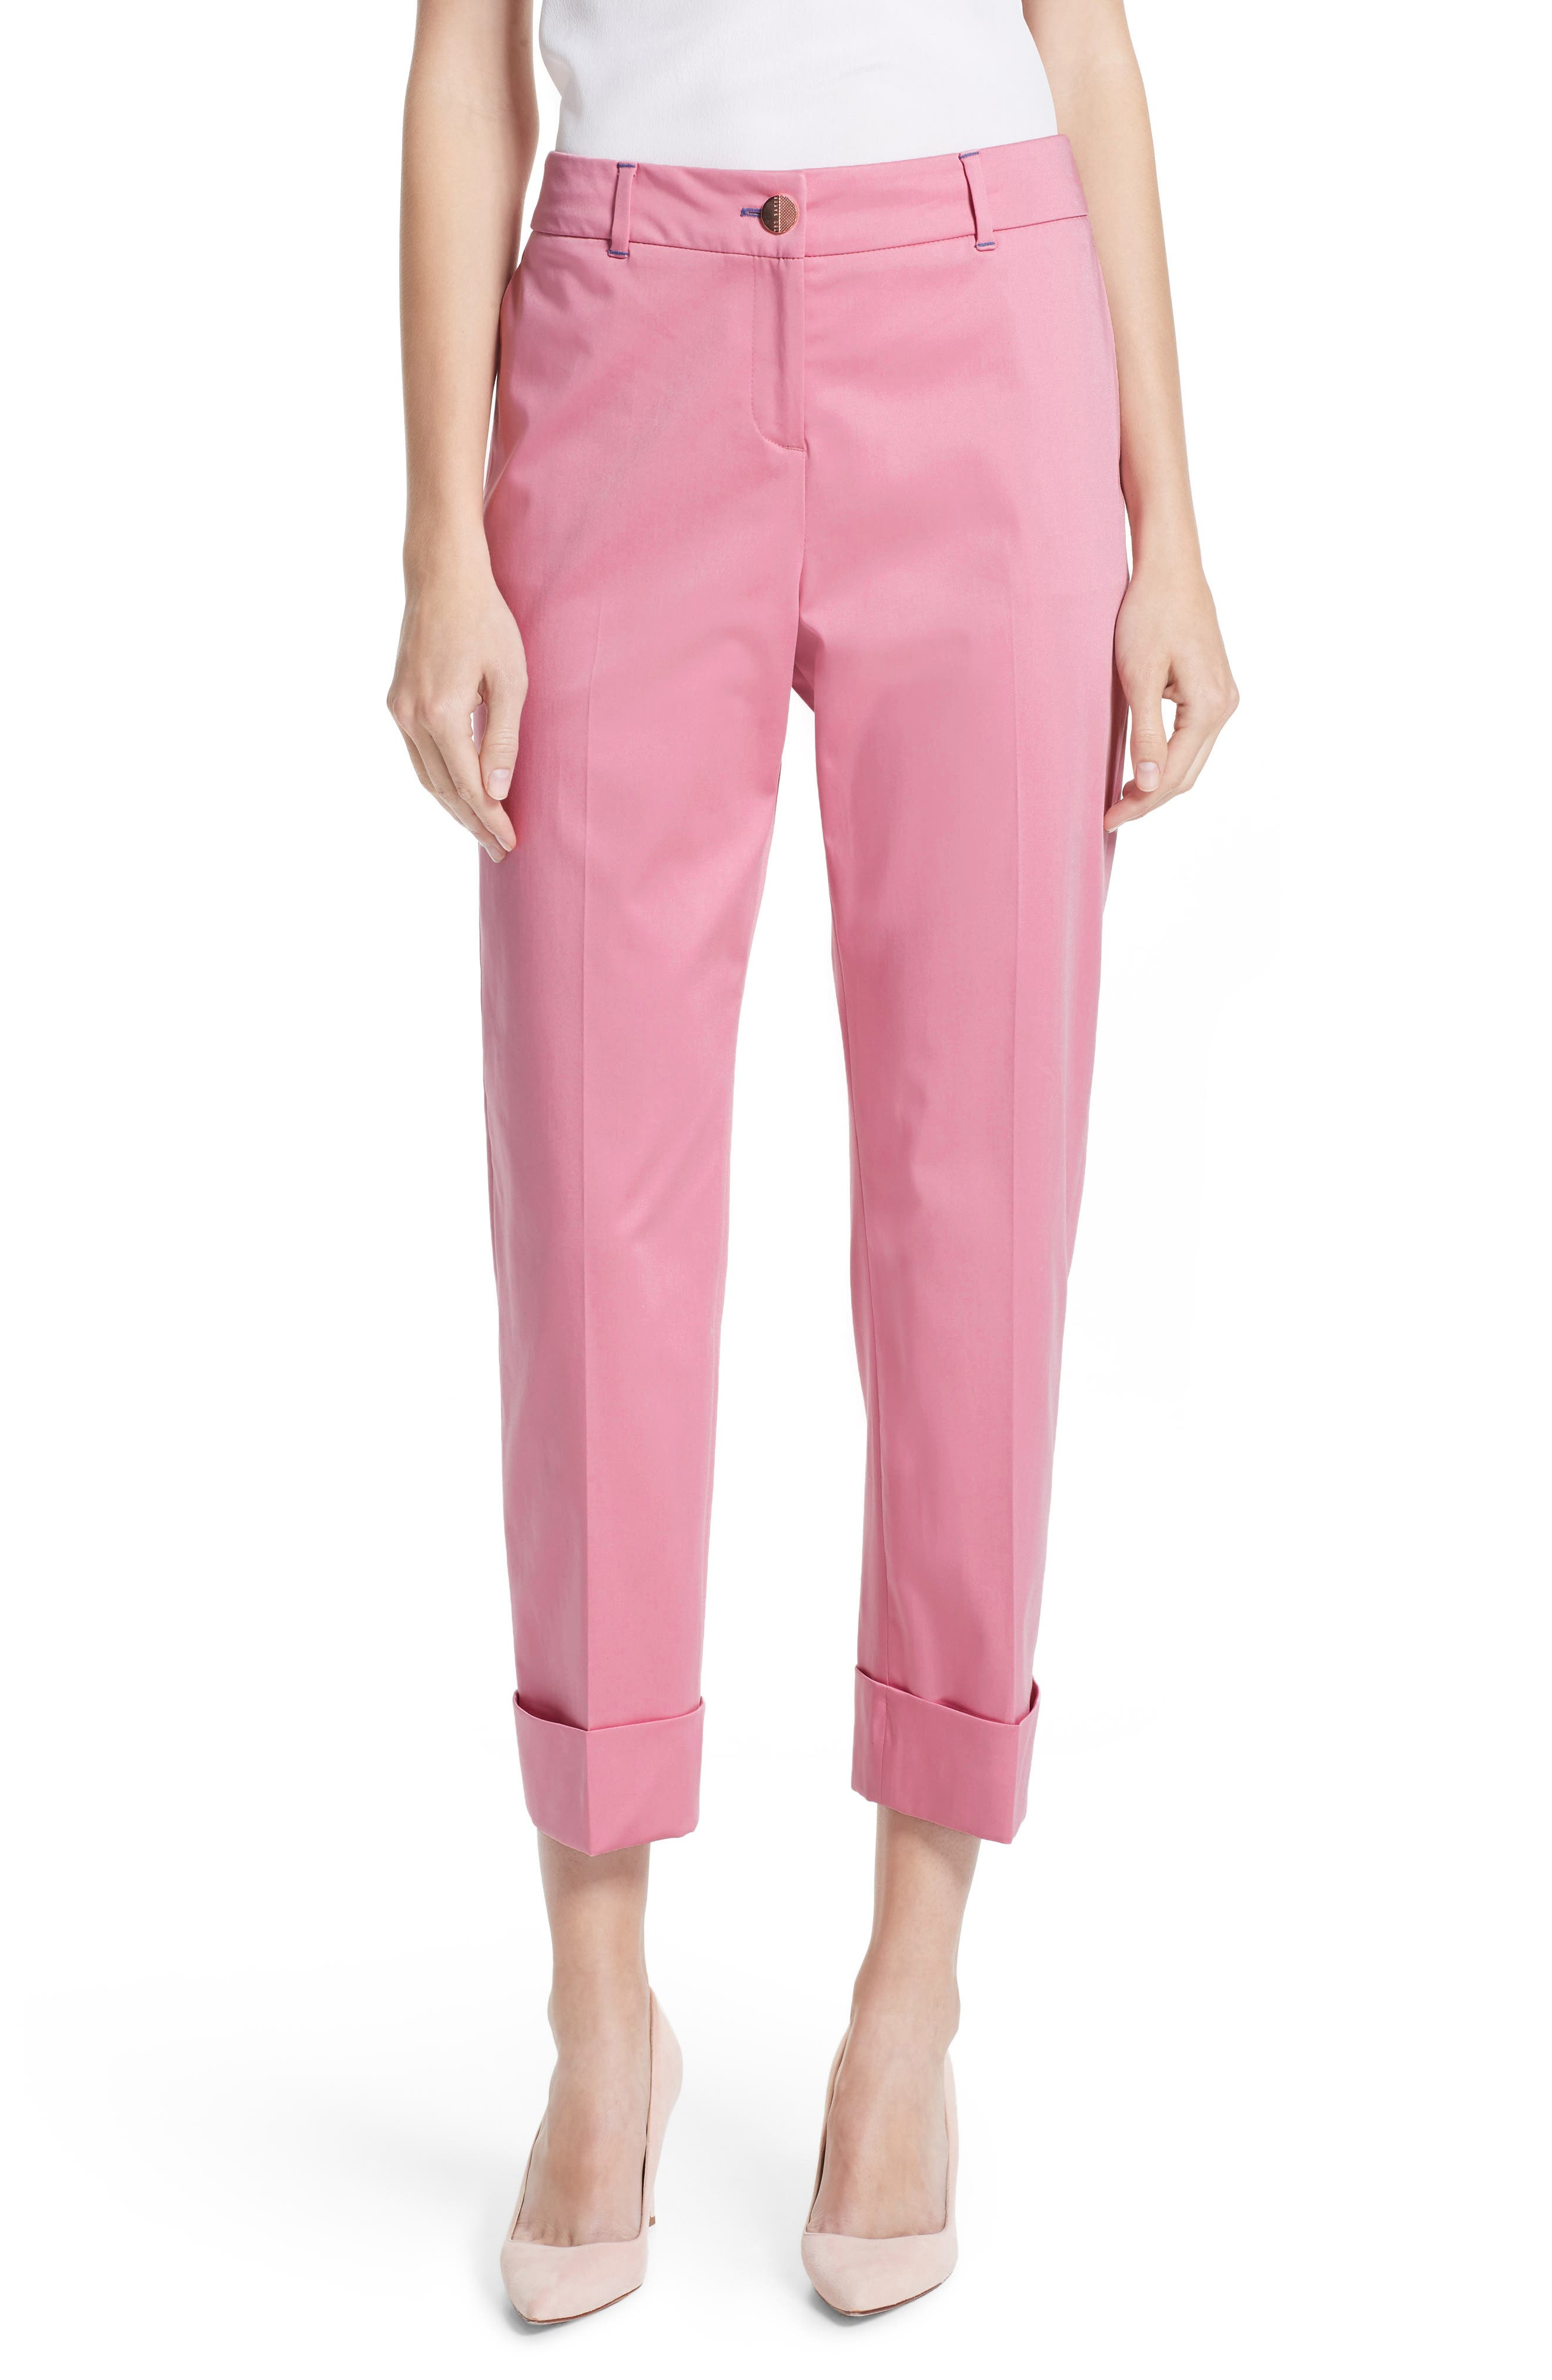 Saydii Deep Cuff Stretch Cotton Chino Pants,                             Main thumbnail 1, color,                             Dusky Pink